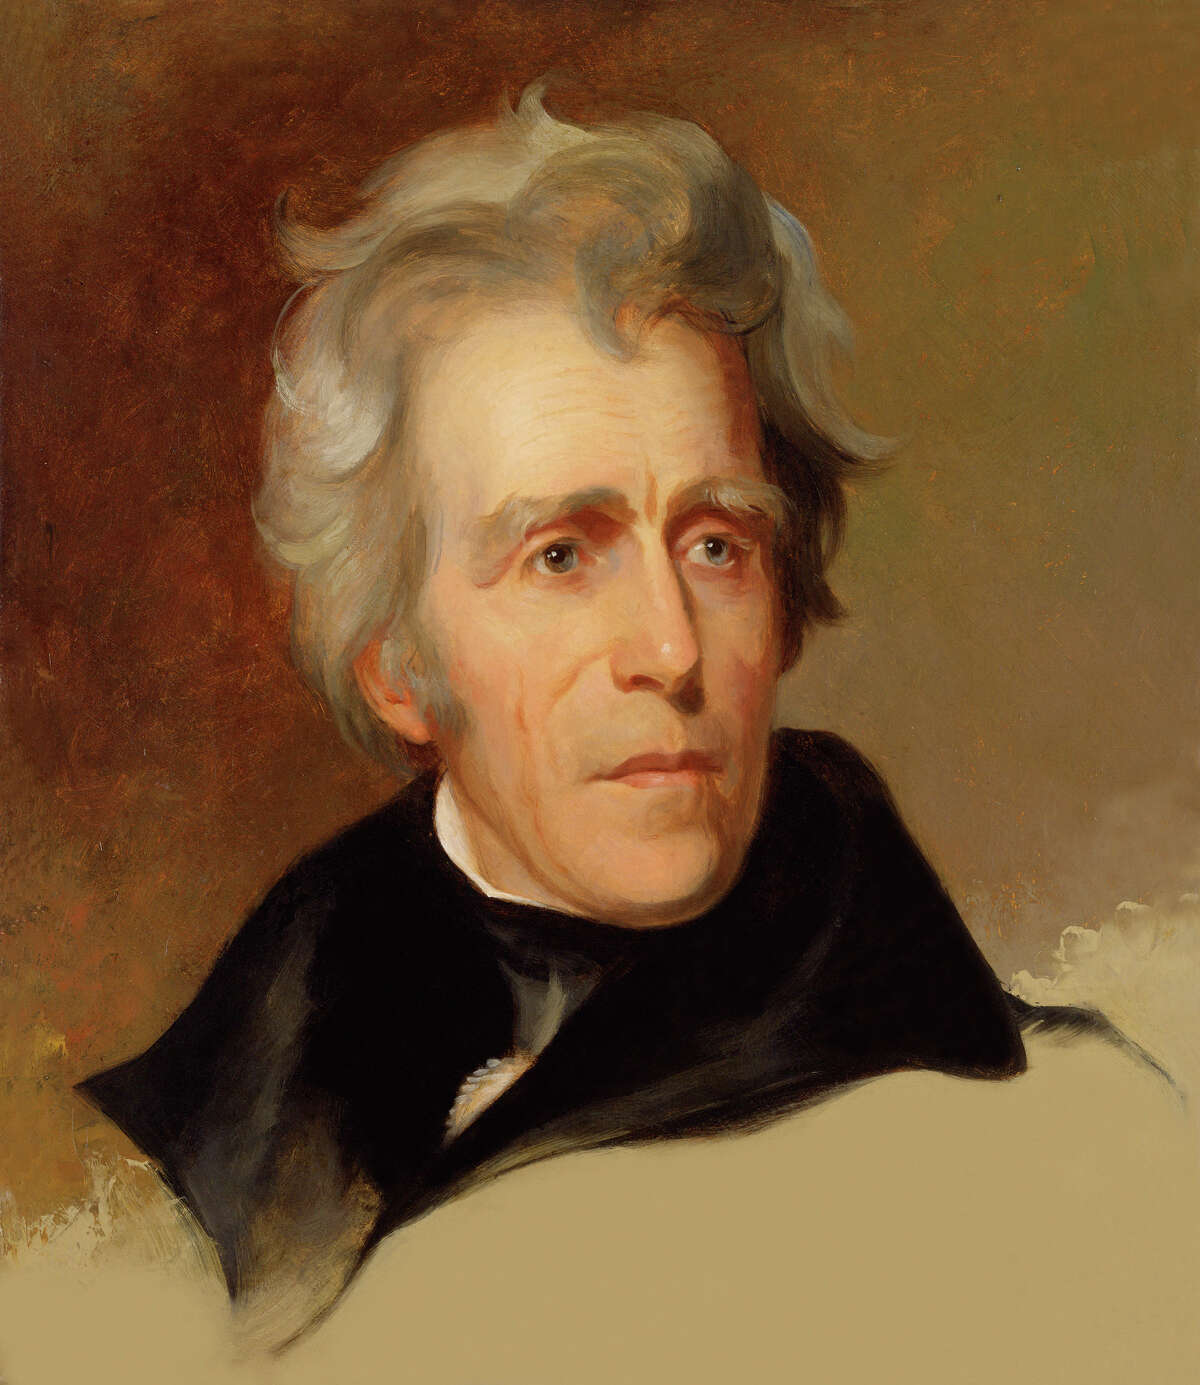 Poverty Jackson was born on what would become the North Carolina - South Carolina state line. He was the son of impoverished Scots-Irish farmers.